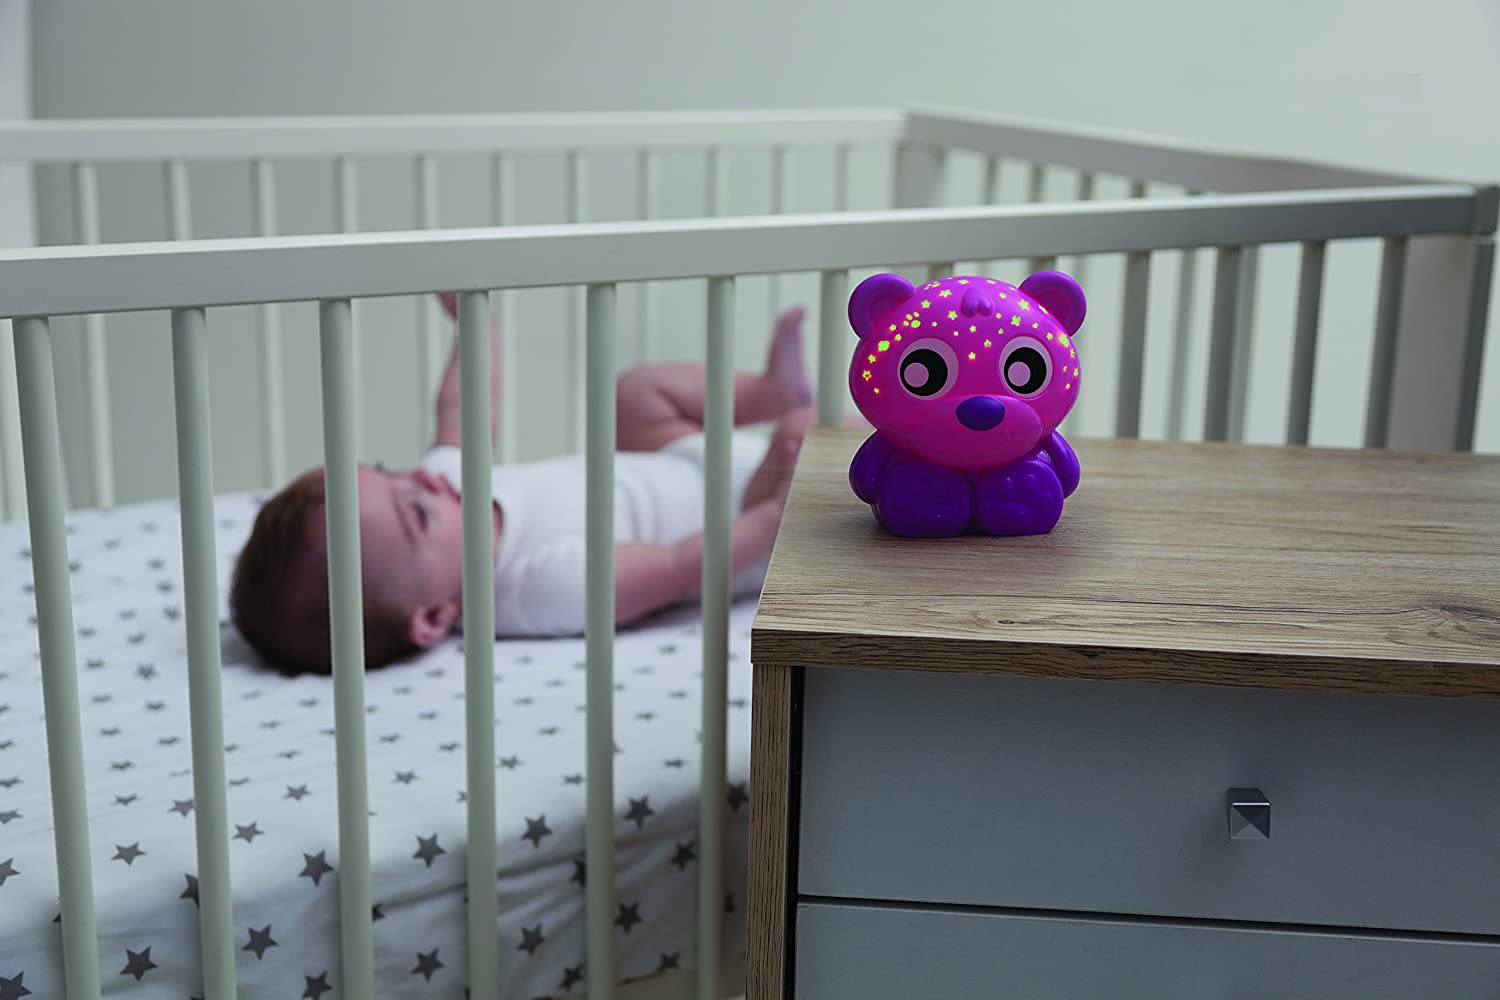 Licht Projector Baby : Amazon.com: playgro goodnight bear night light and projector pink: baby